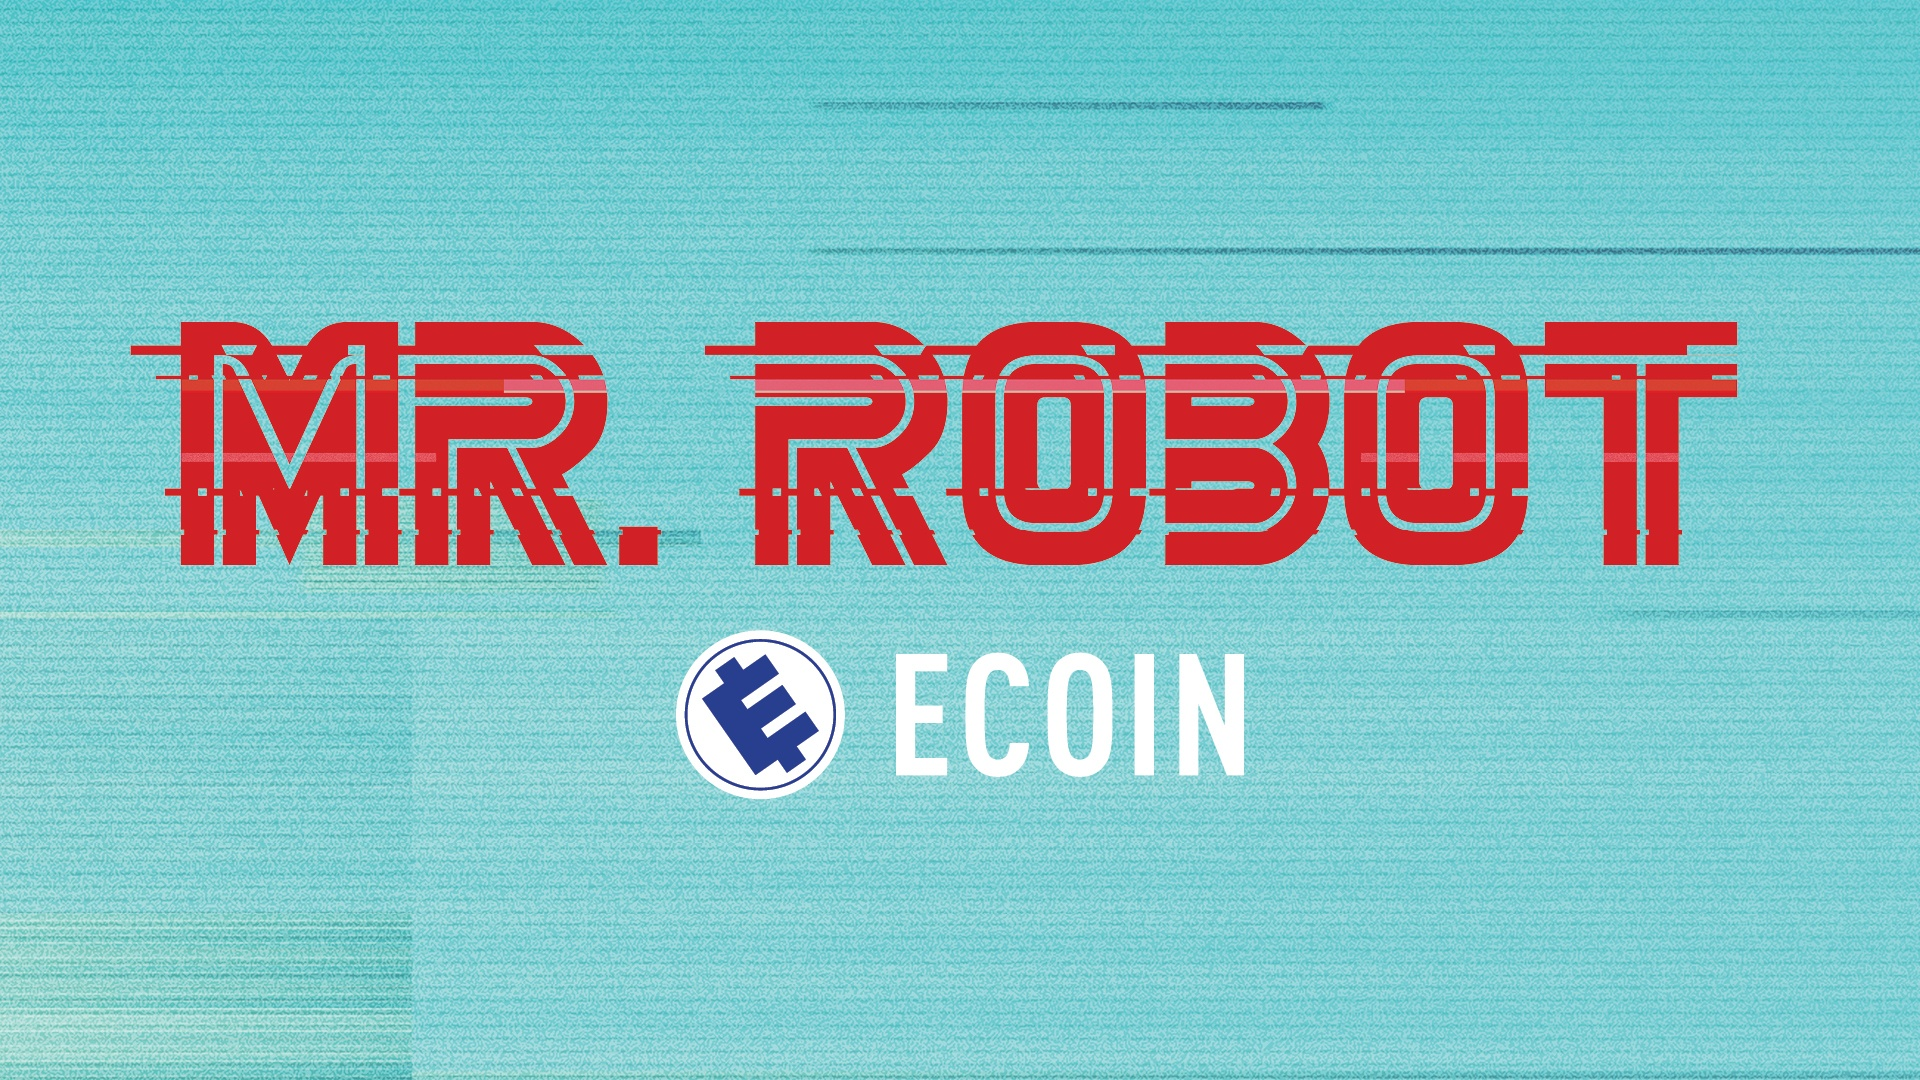 Image Media for Mr. Robot: Ecoin